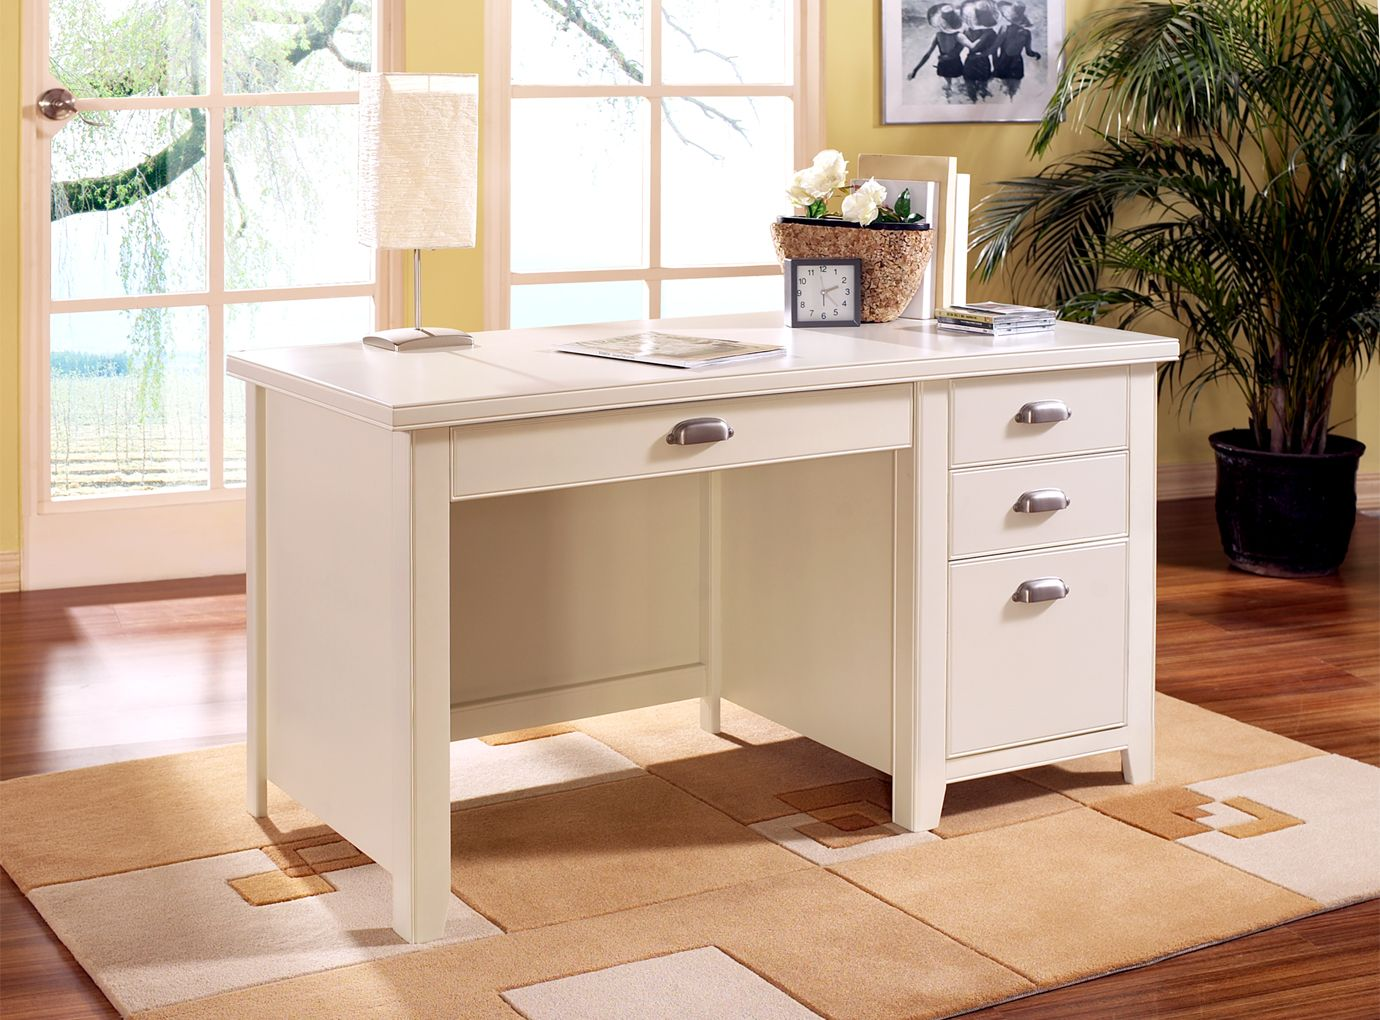 Martin Home Furnishings Manufacture Entertainment Centers And